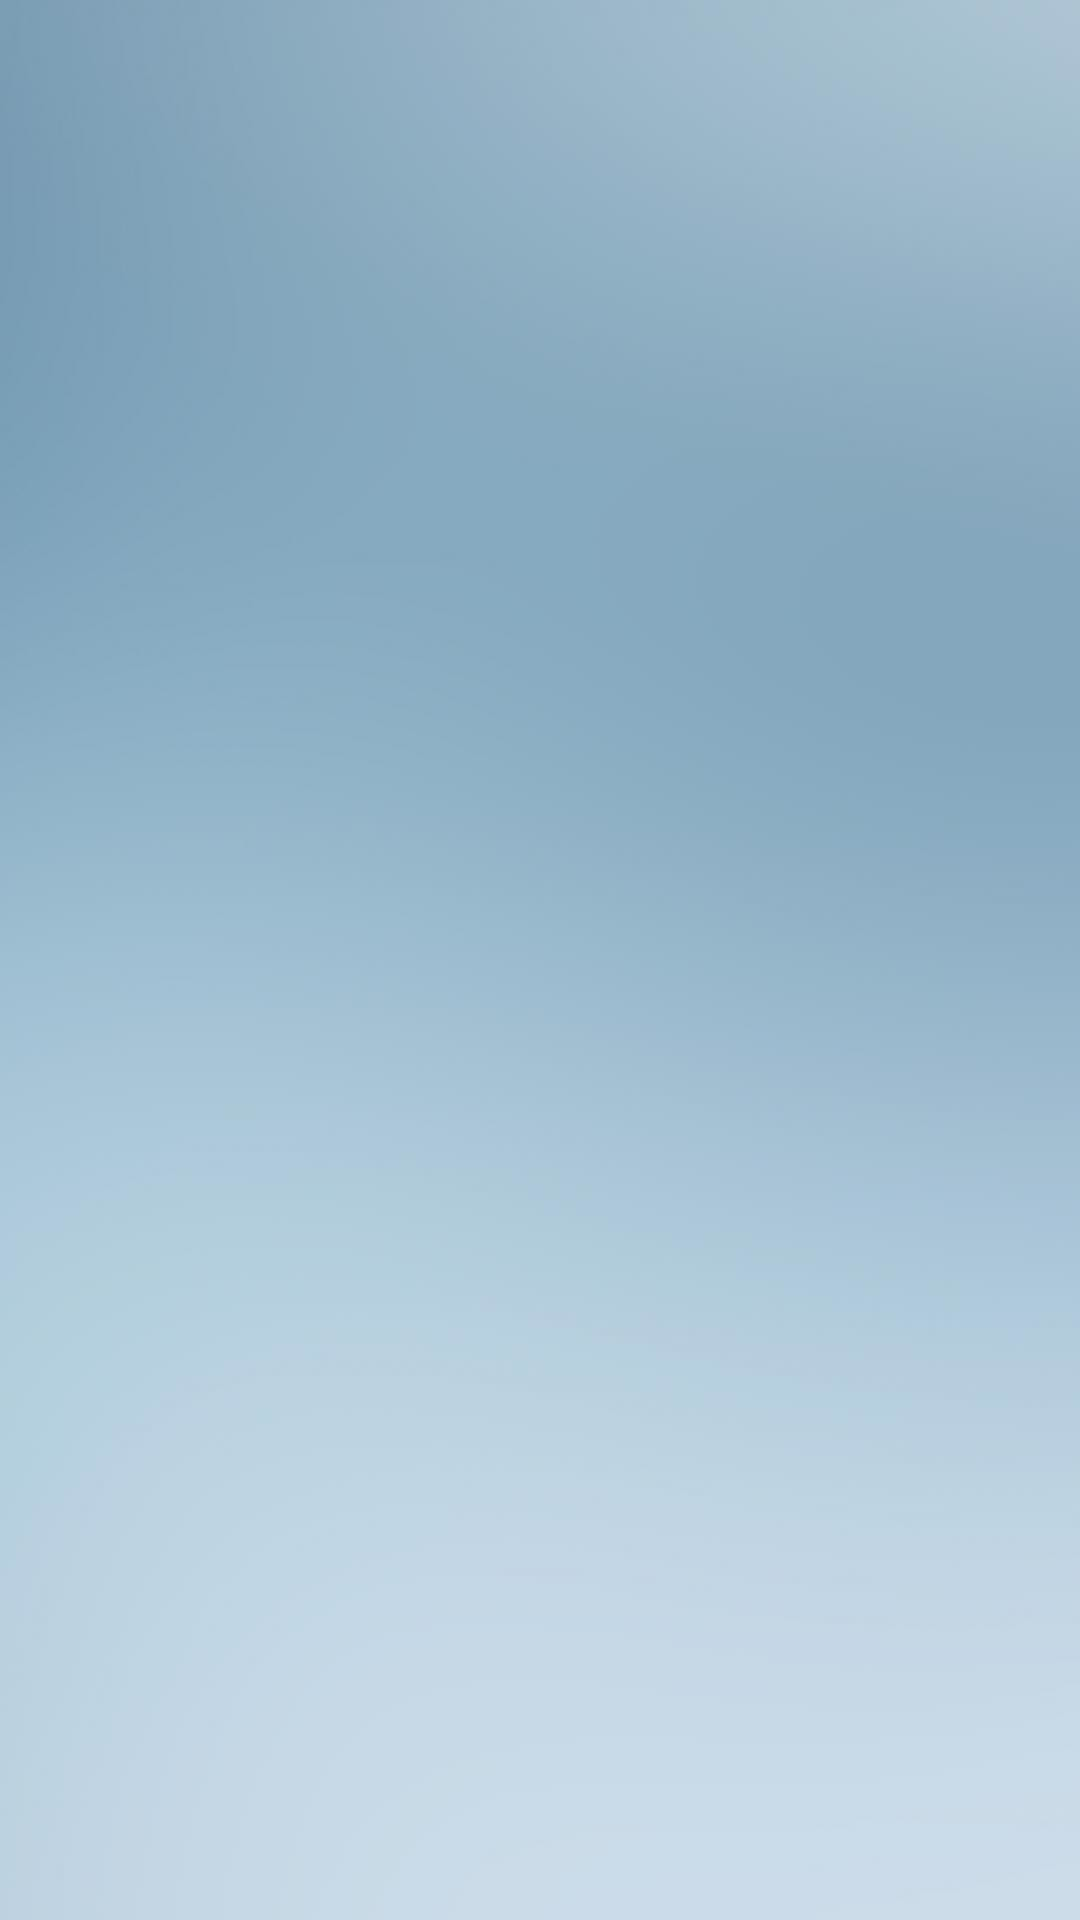 1080x1920 foggy sky blue gradation blur